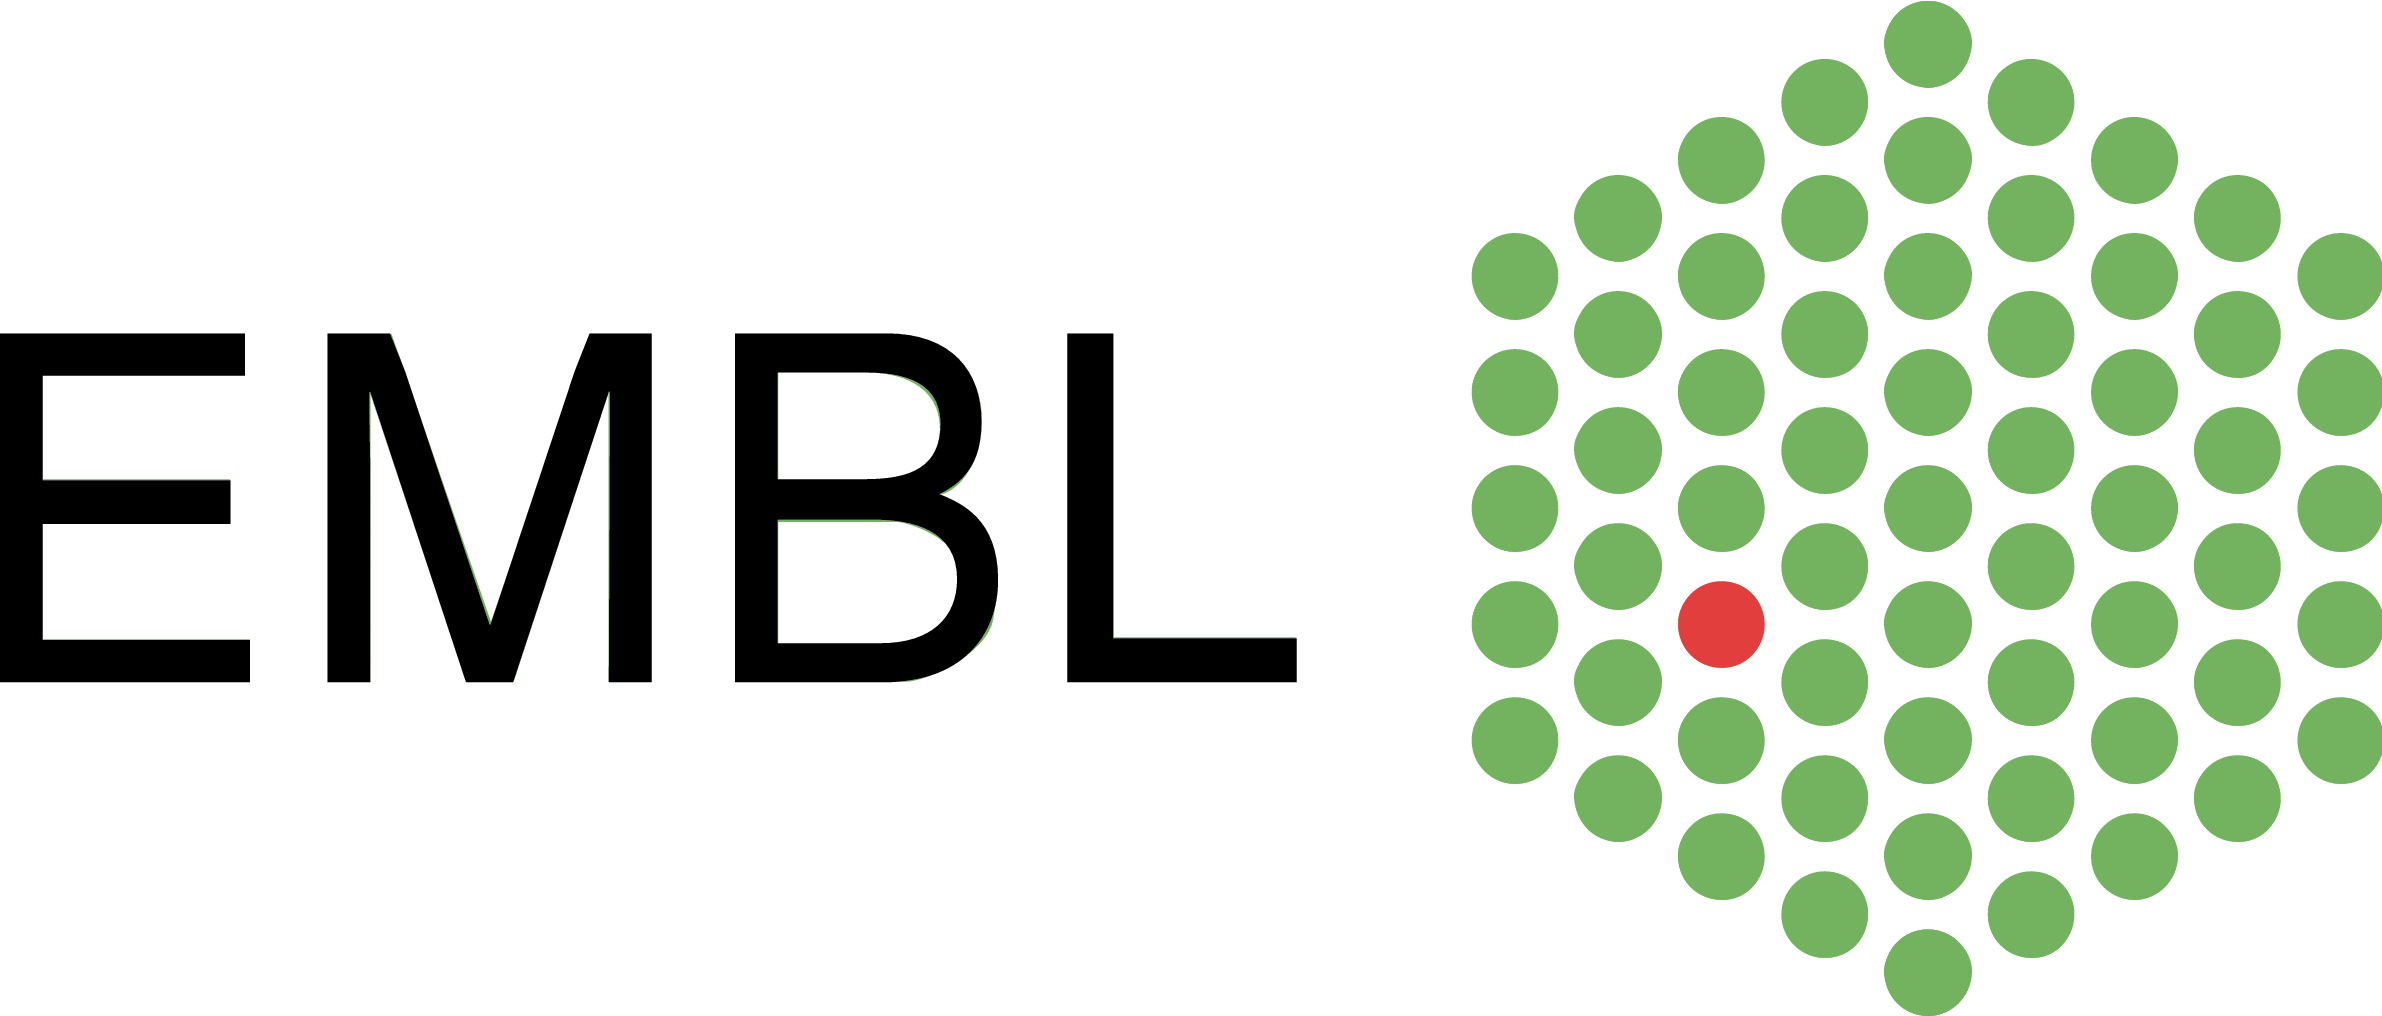 logo for European Molecular Biology Laboratory